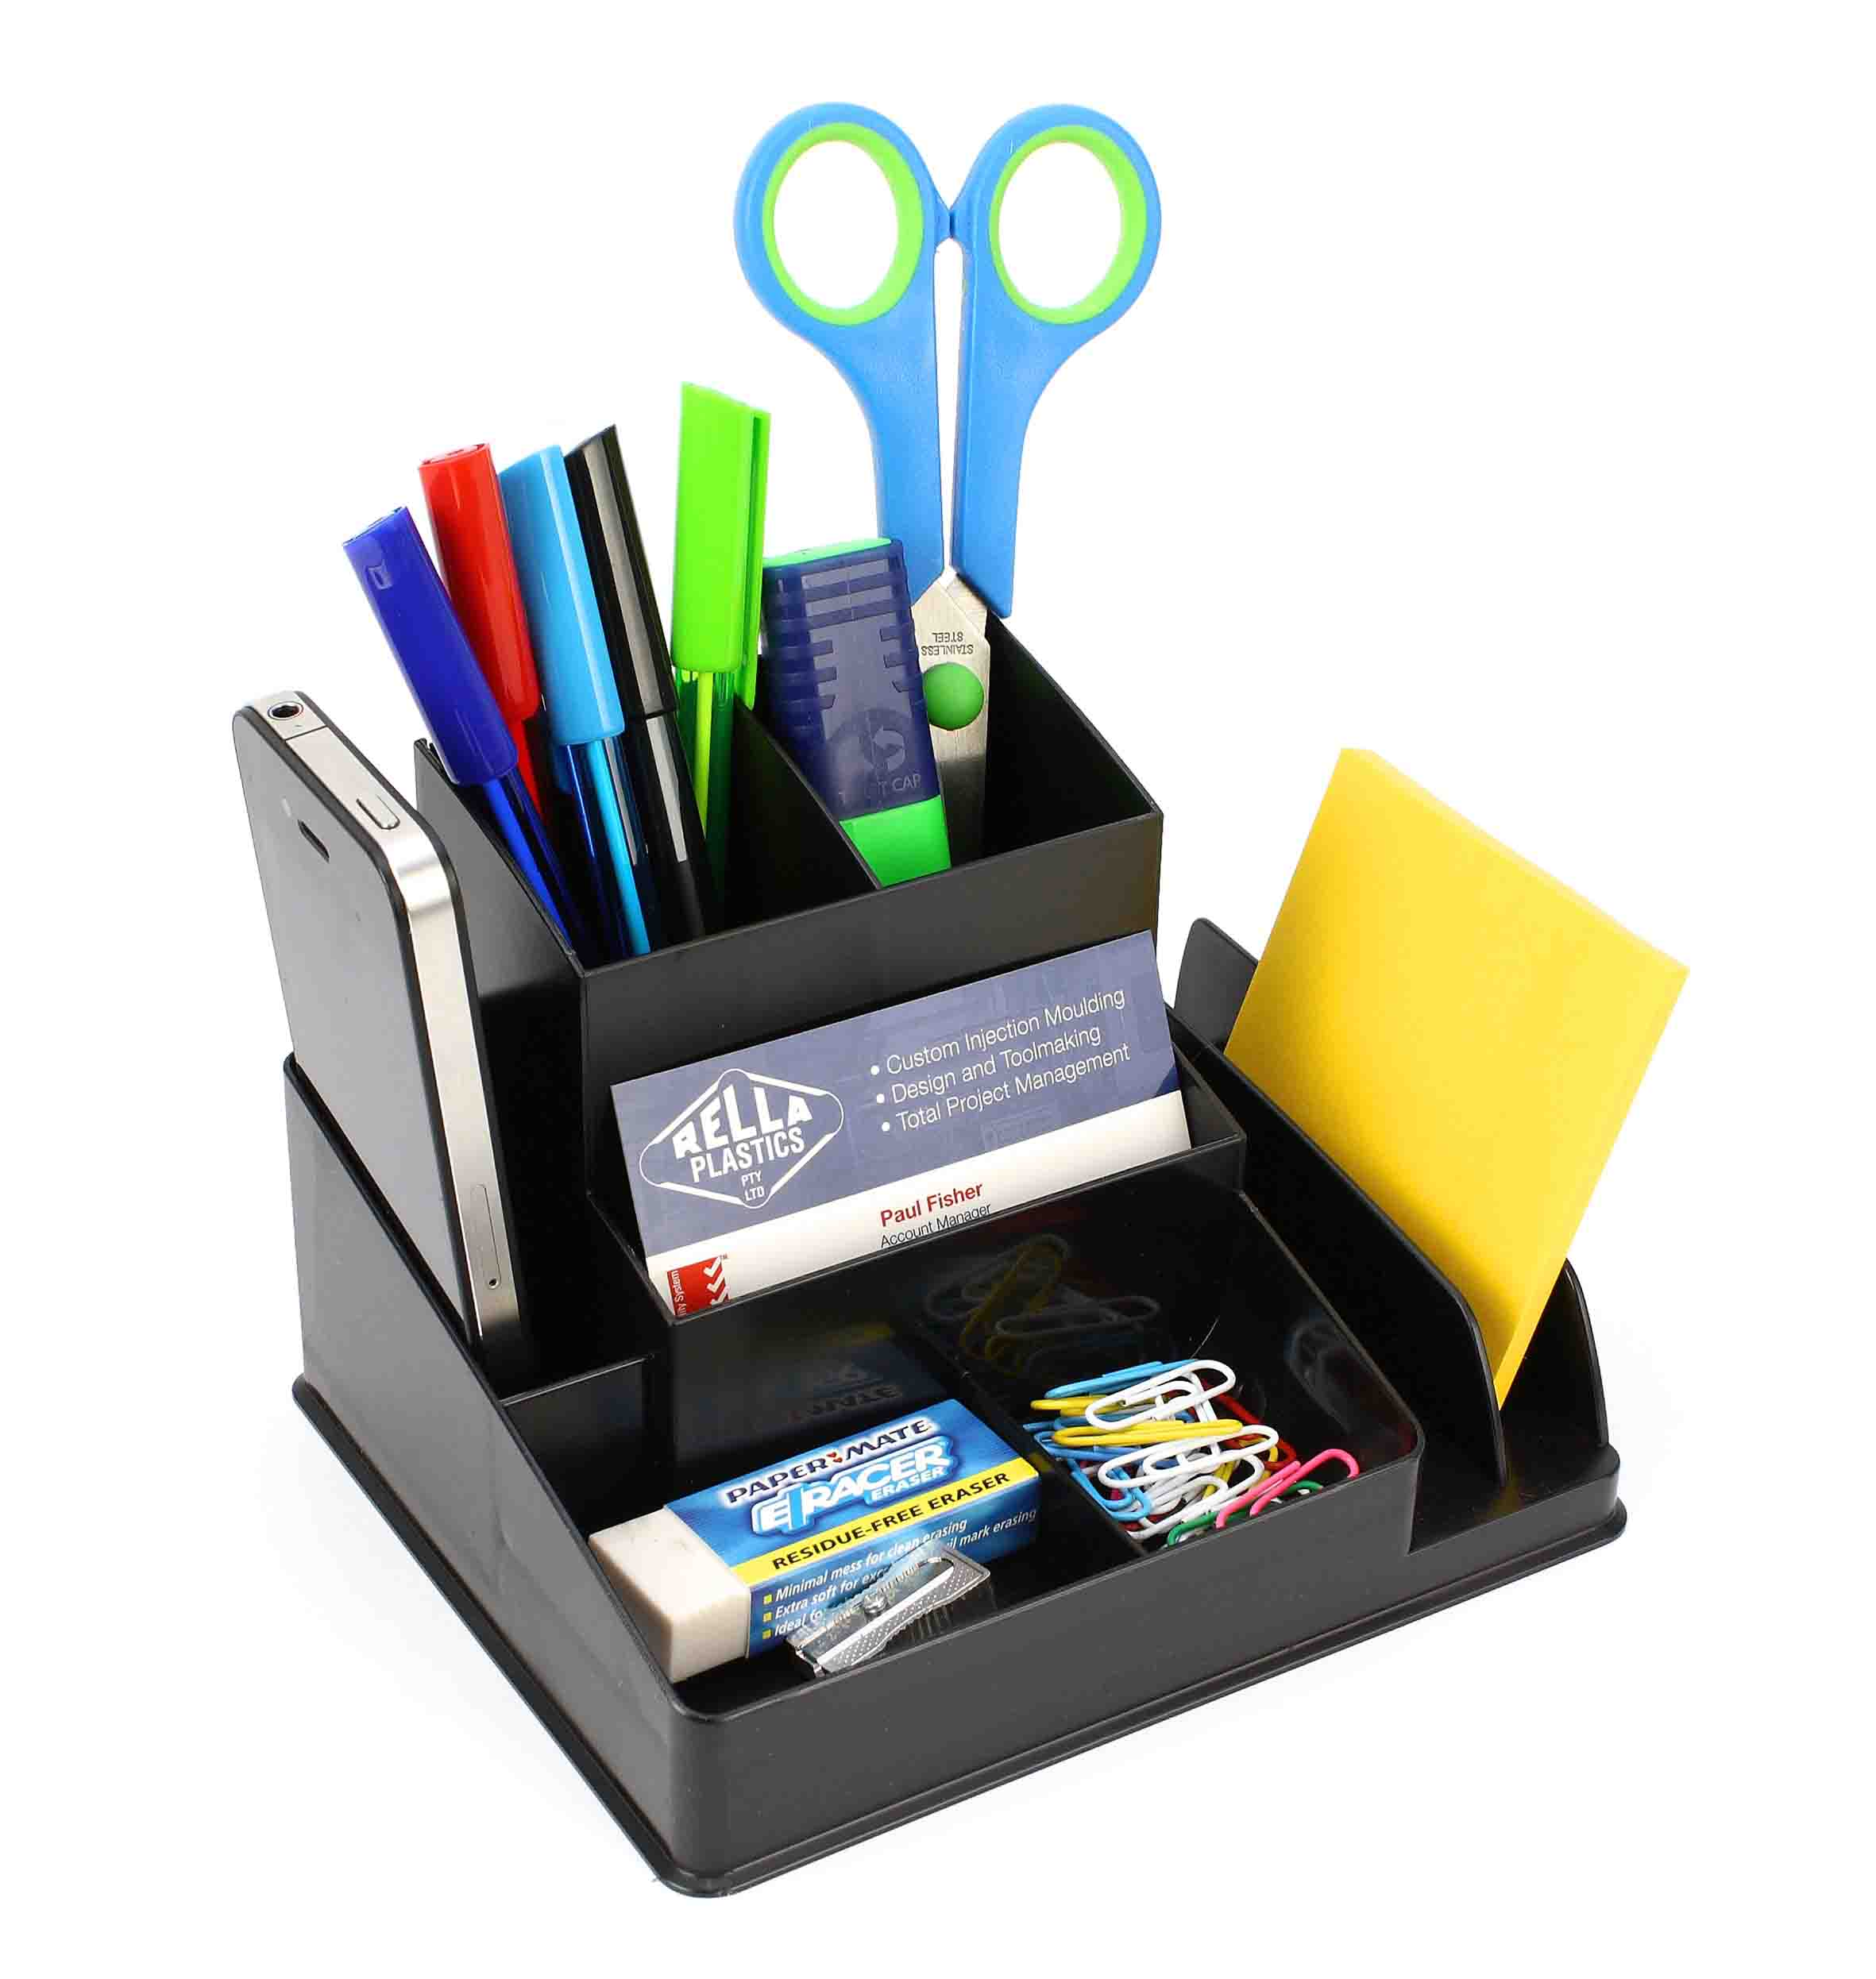 asp melbourne supplies organiser w x italplast dimensions offers bulk office black desk brisbane storage ok stationery l with school mm h sydney versatility can product tidy desktop